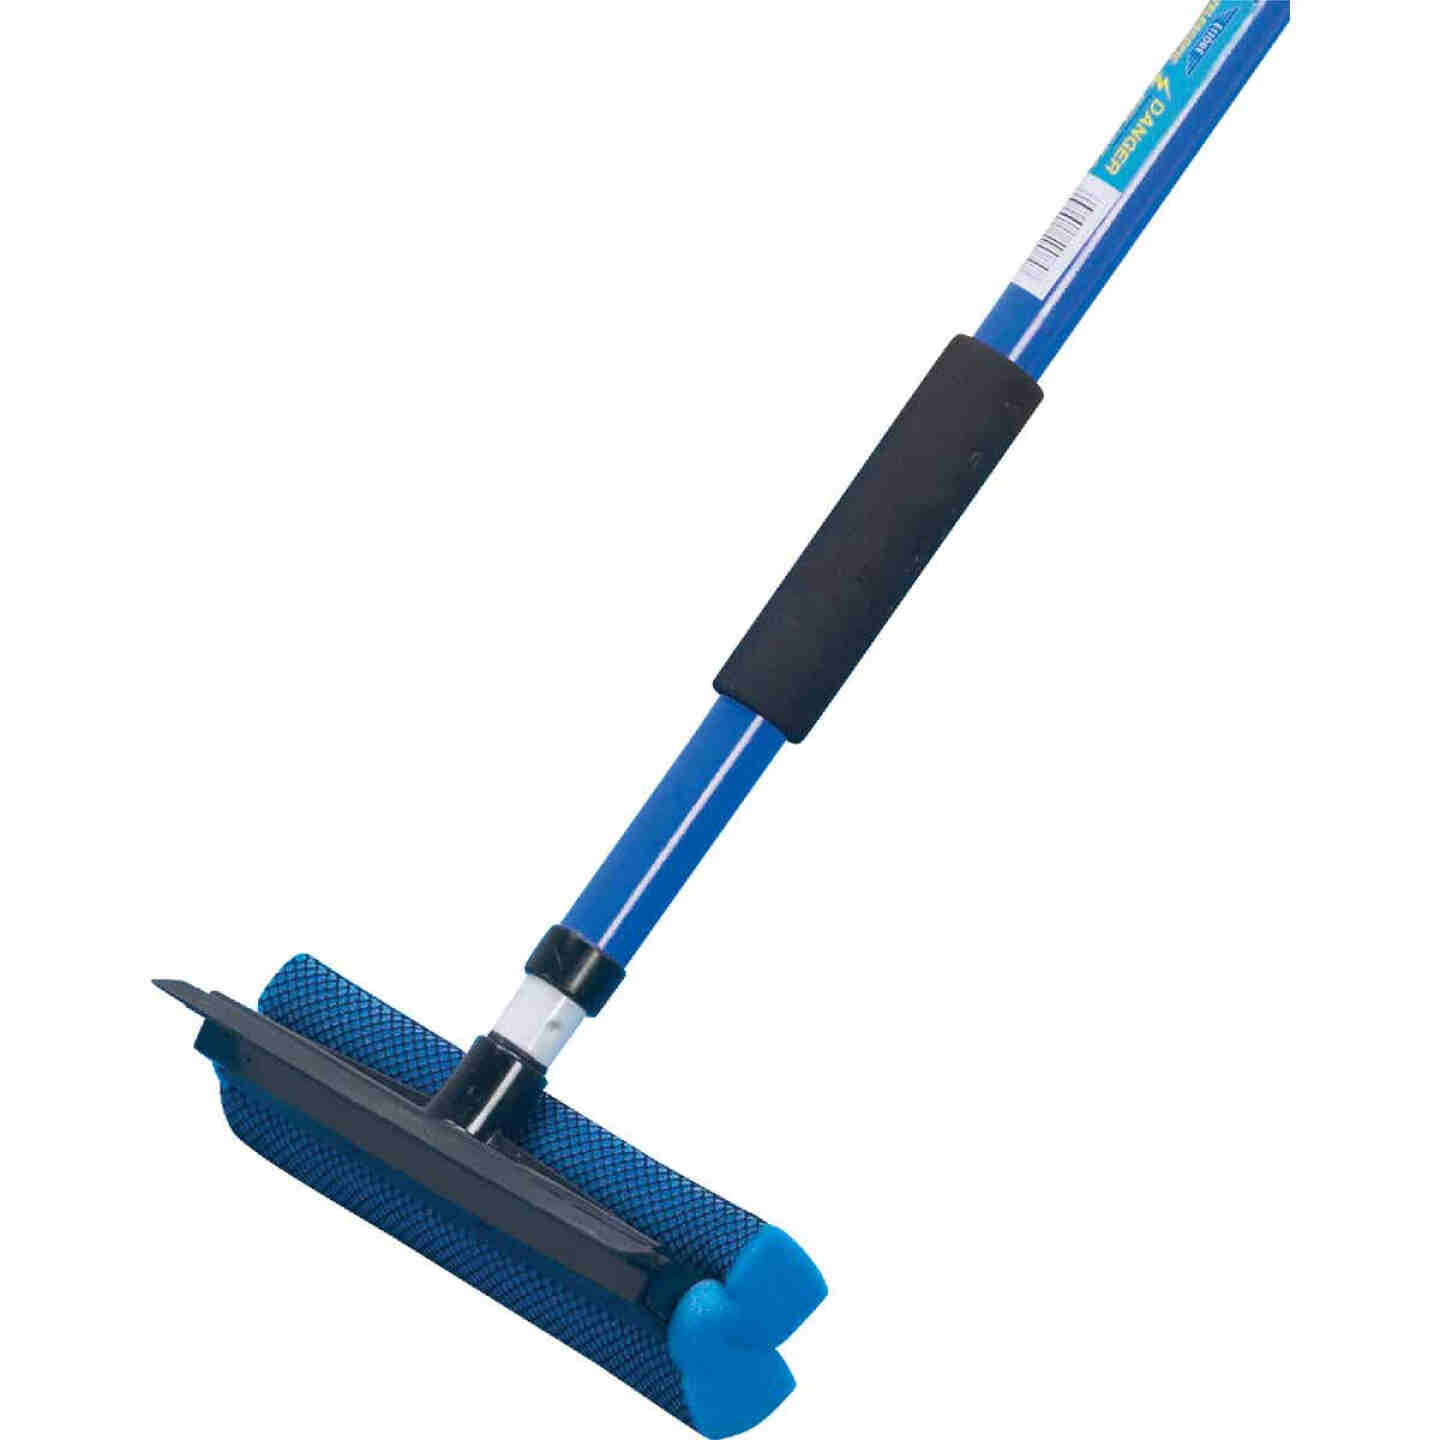 Ettore 7 Ft. L Windshield Squeegee Image 5